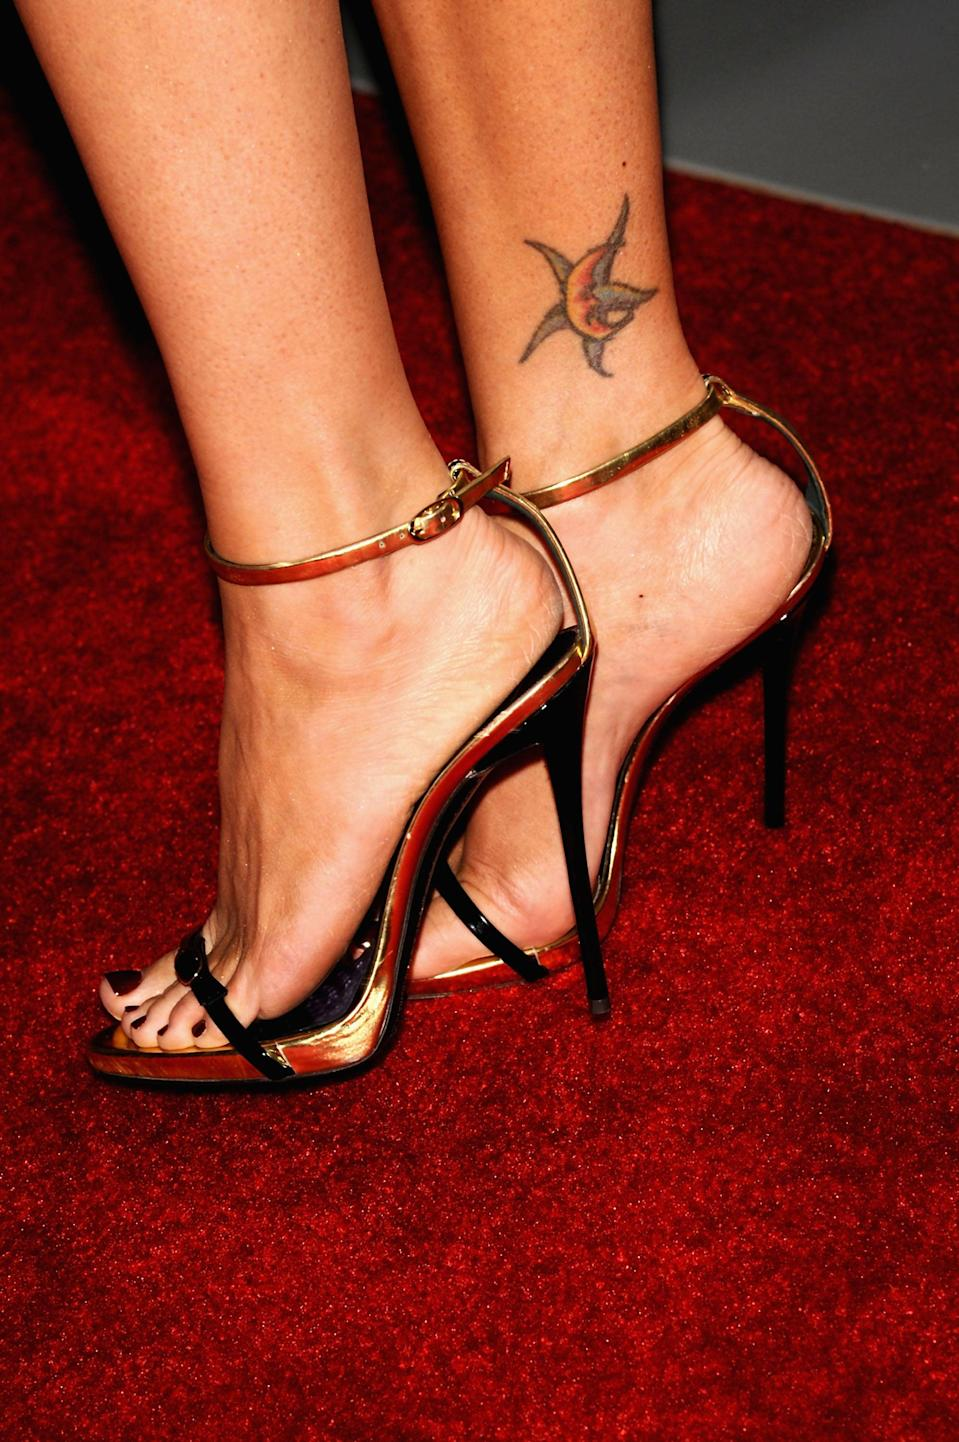 <p>Fox has a crescent moon and star tattoo on the inside of her right ankle. It is her only known tattoo that uses colored ink, with the star being blue and the moon a yellow hue. She's had the tattoo for over a decade.</p>